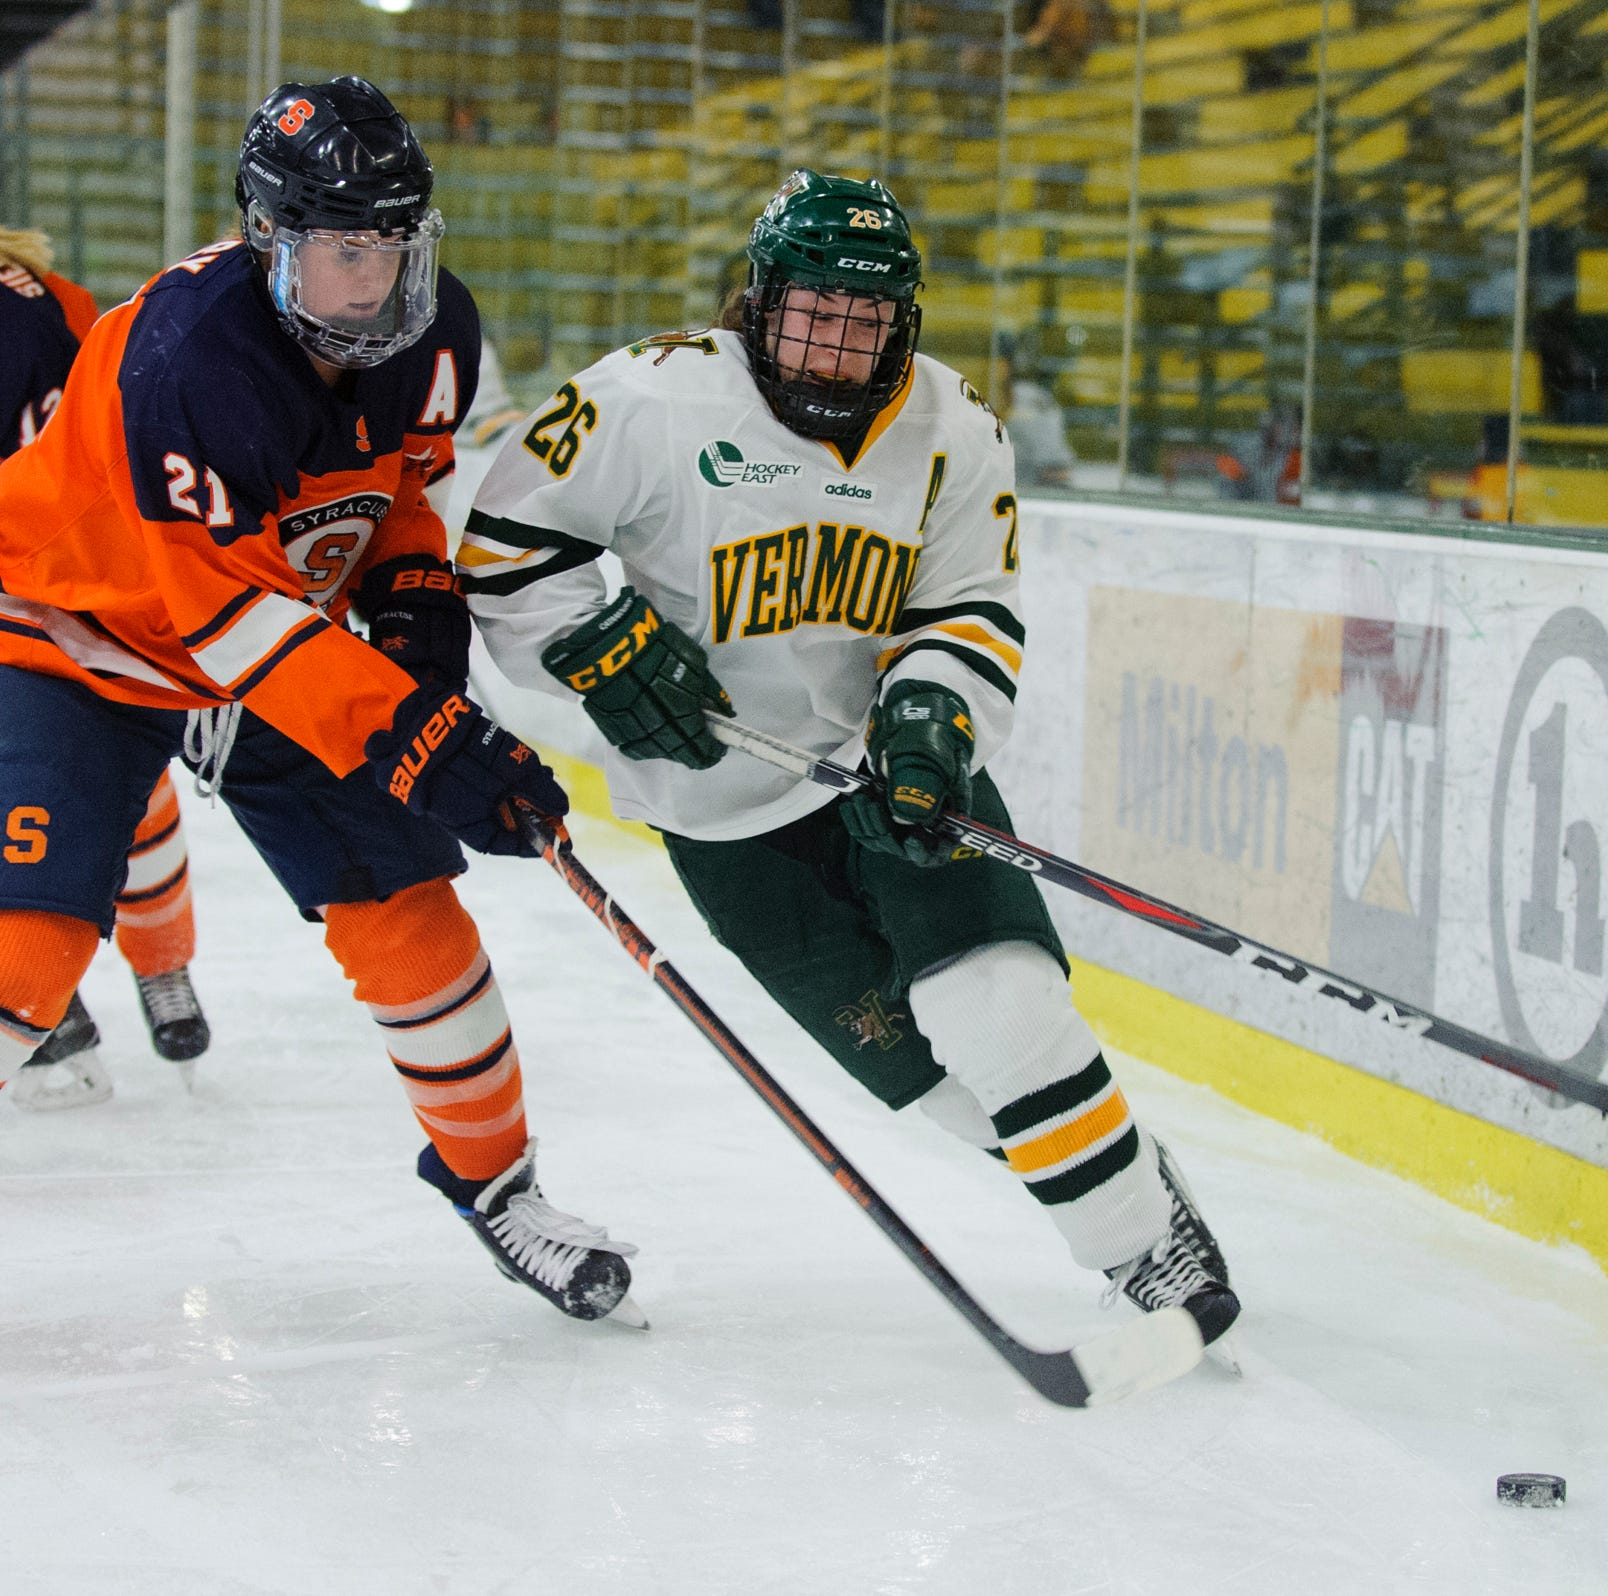 Vermont's Eve-Audrey Picard (26) battles for the puck with Syracuse's Brooke Avery (21) during the women's hockey game between the Syracuse Orange and the Vermont Catamounts at Gutterson Field House on Friday night November 23, 2018 in Burlington.